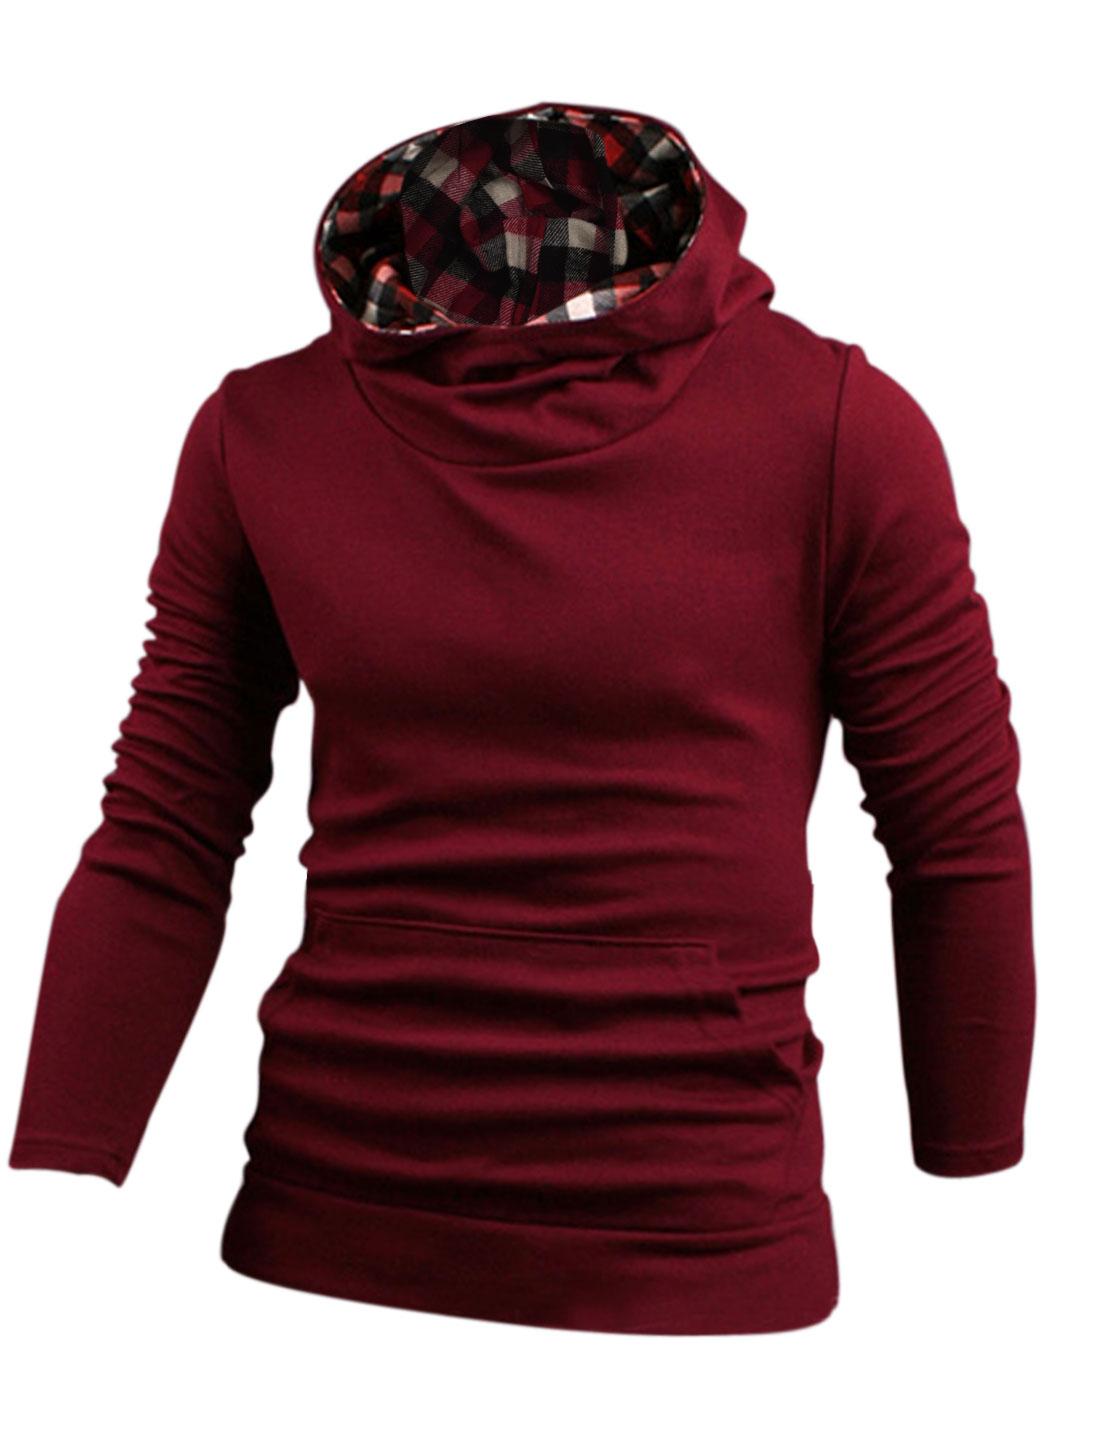 Men Hooded Kangaroo Pocket Pullover Casual Sweatshirt Burgundy M